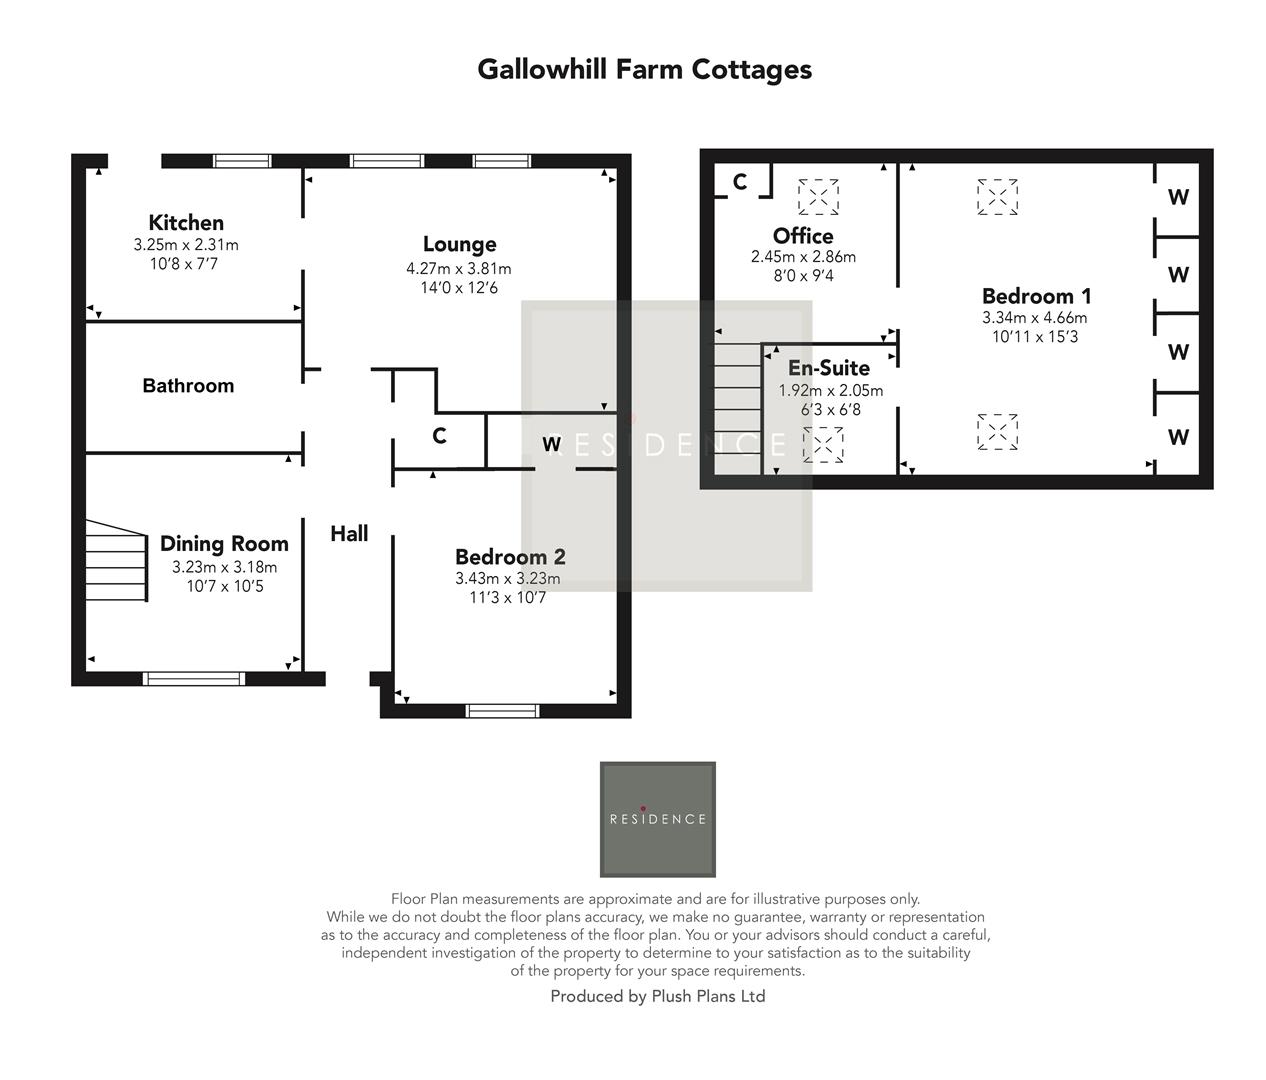 Gallowhill Farm Cottages_fp.jpg